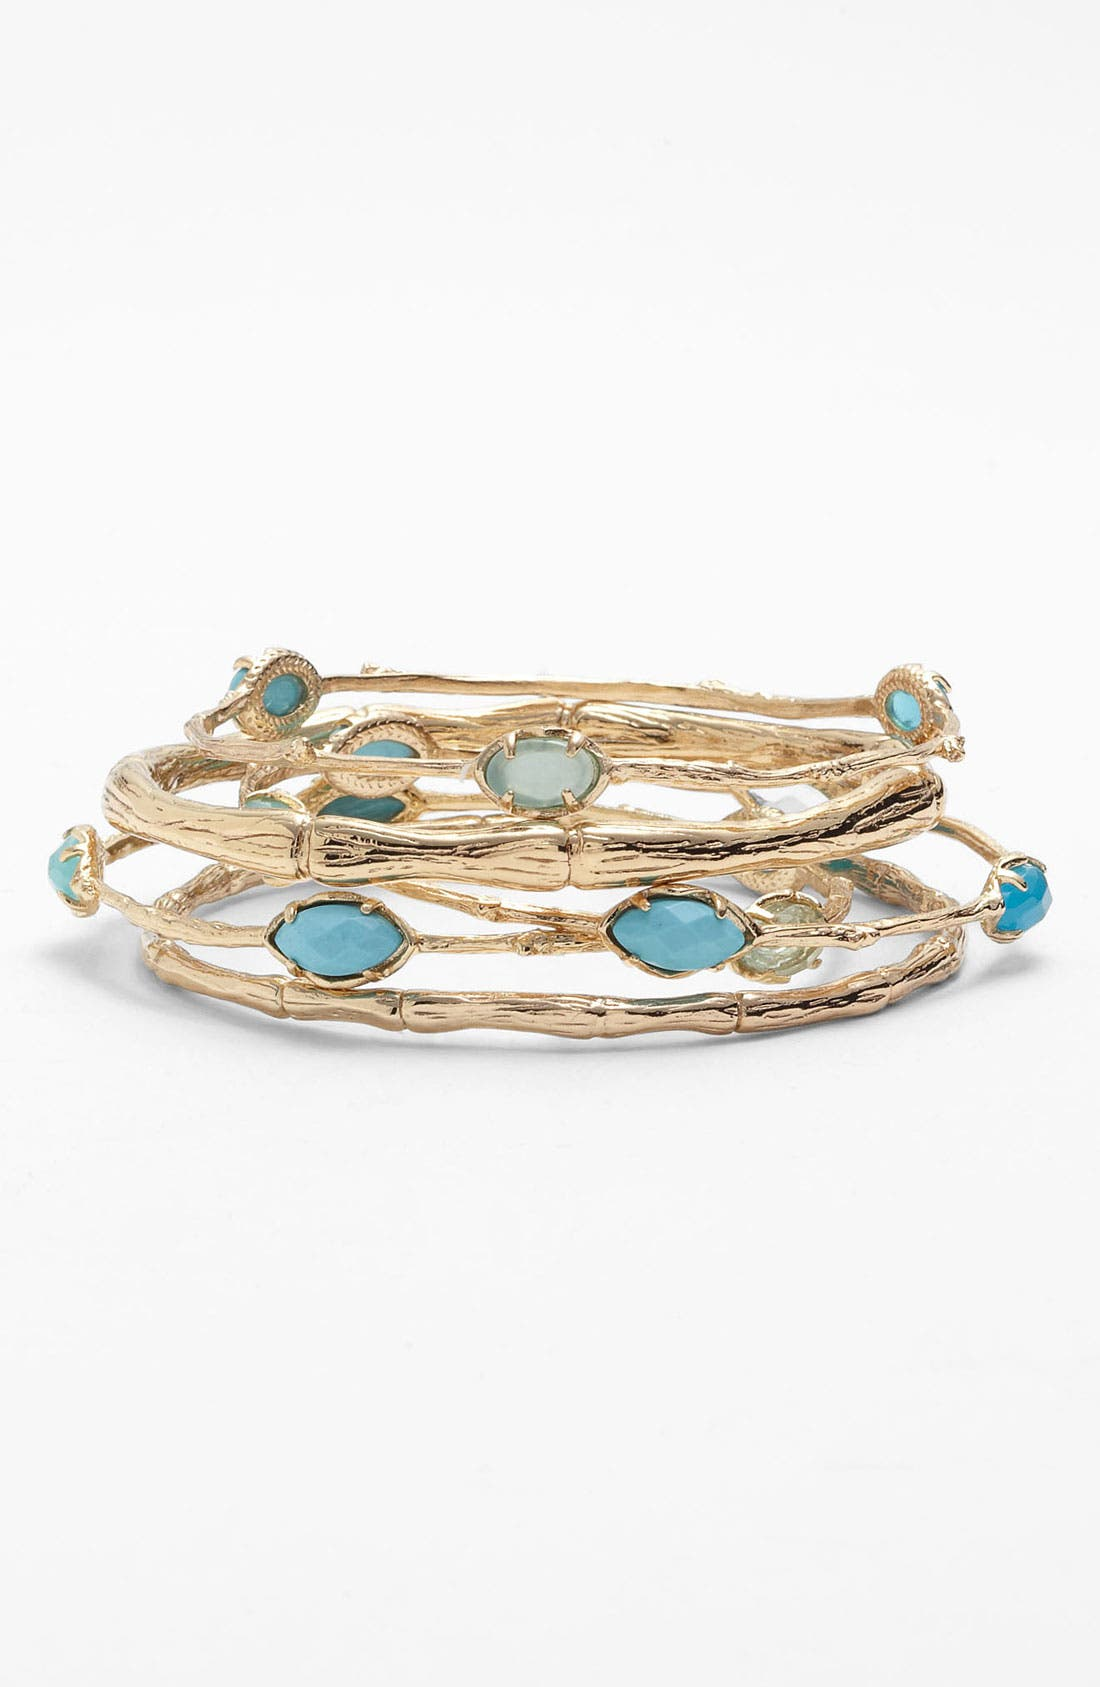 Main Image - Kendra Scott 'Bella' Bangles (Set of 5)